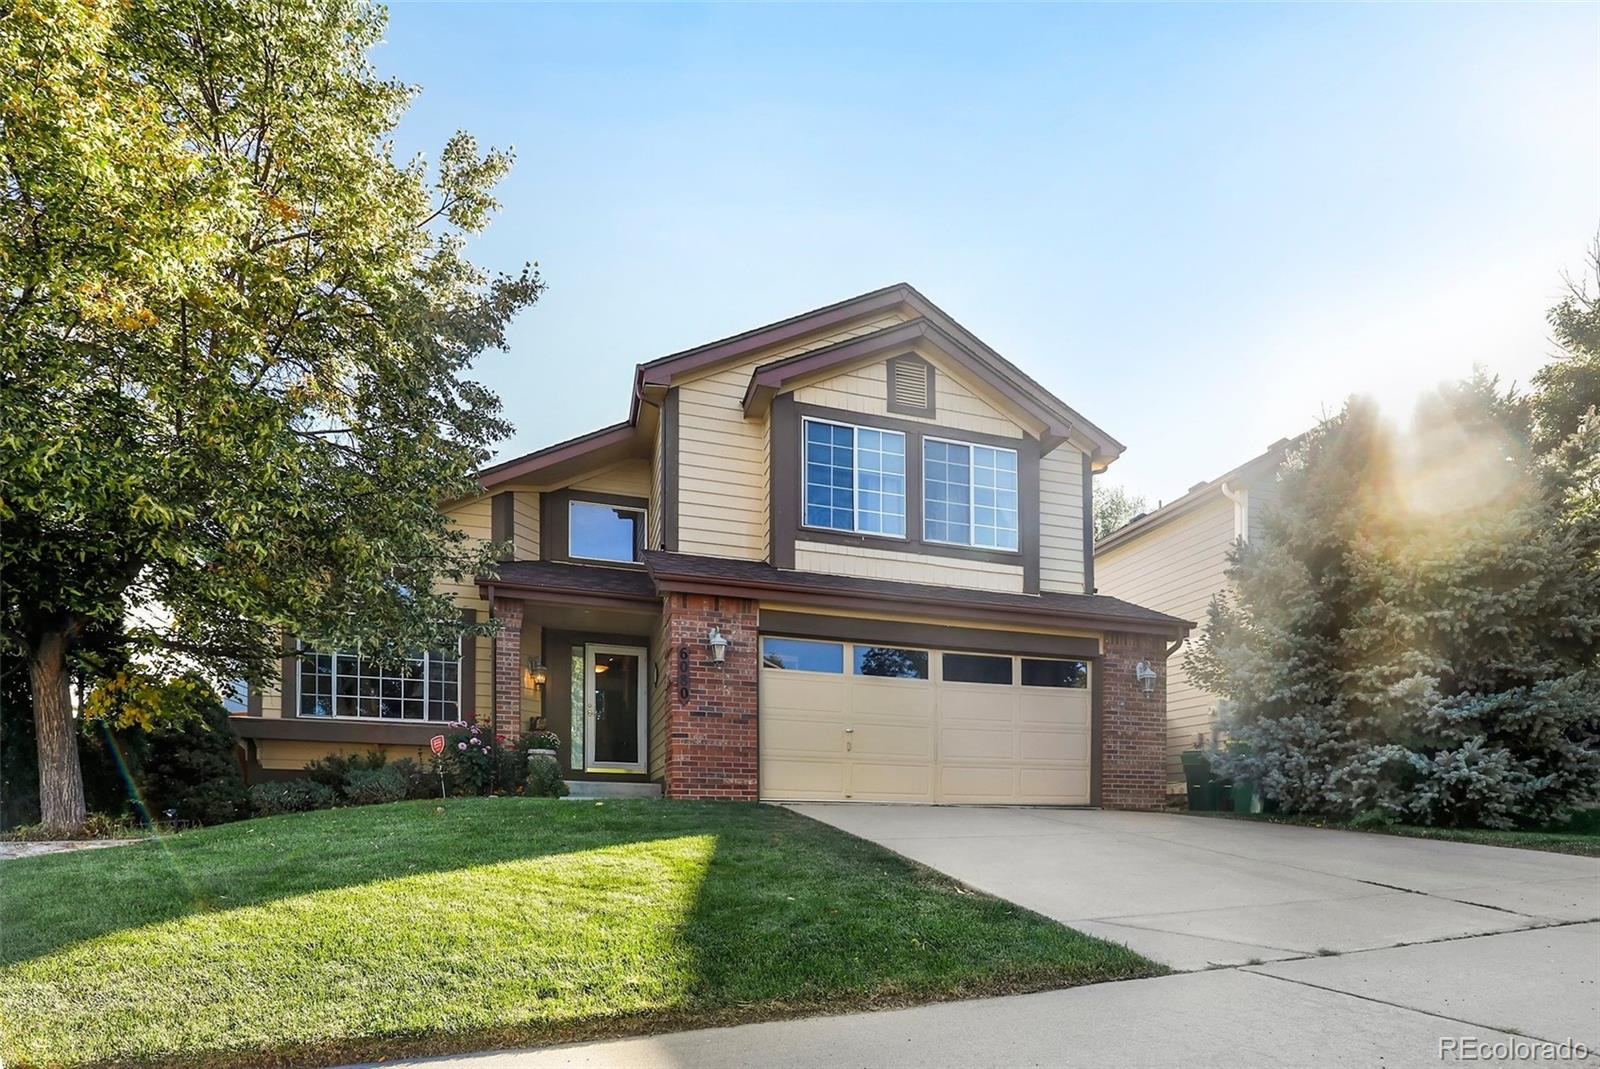 MLS# 1858116 - 2 - 6080 S Summer Ridge Way, Castle Rock, CO 80109